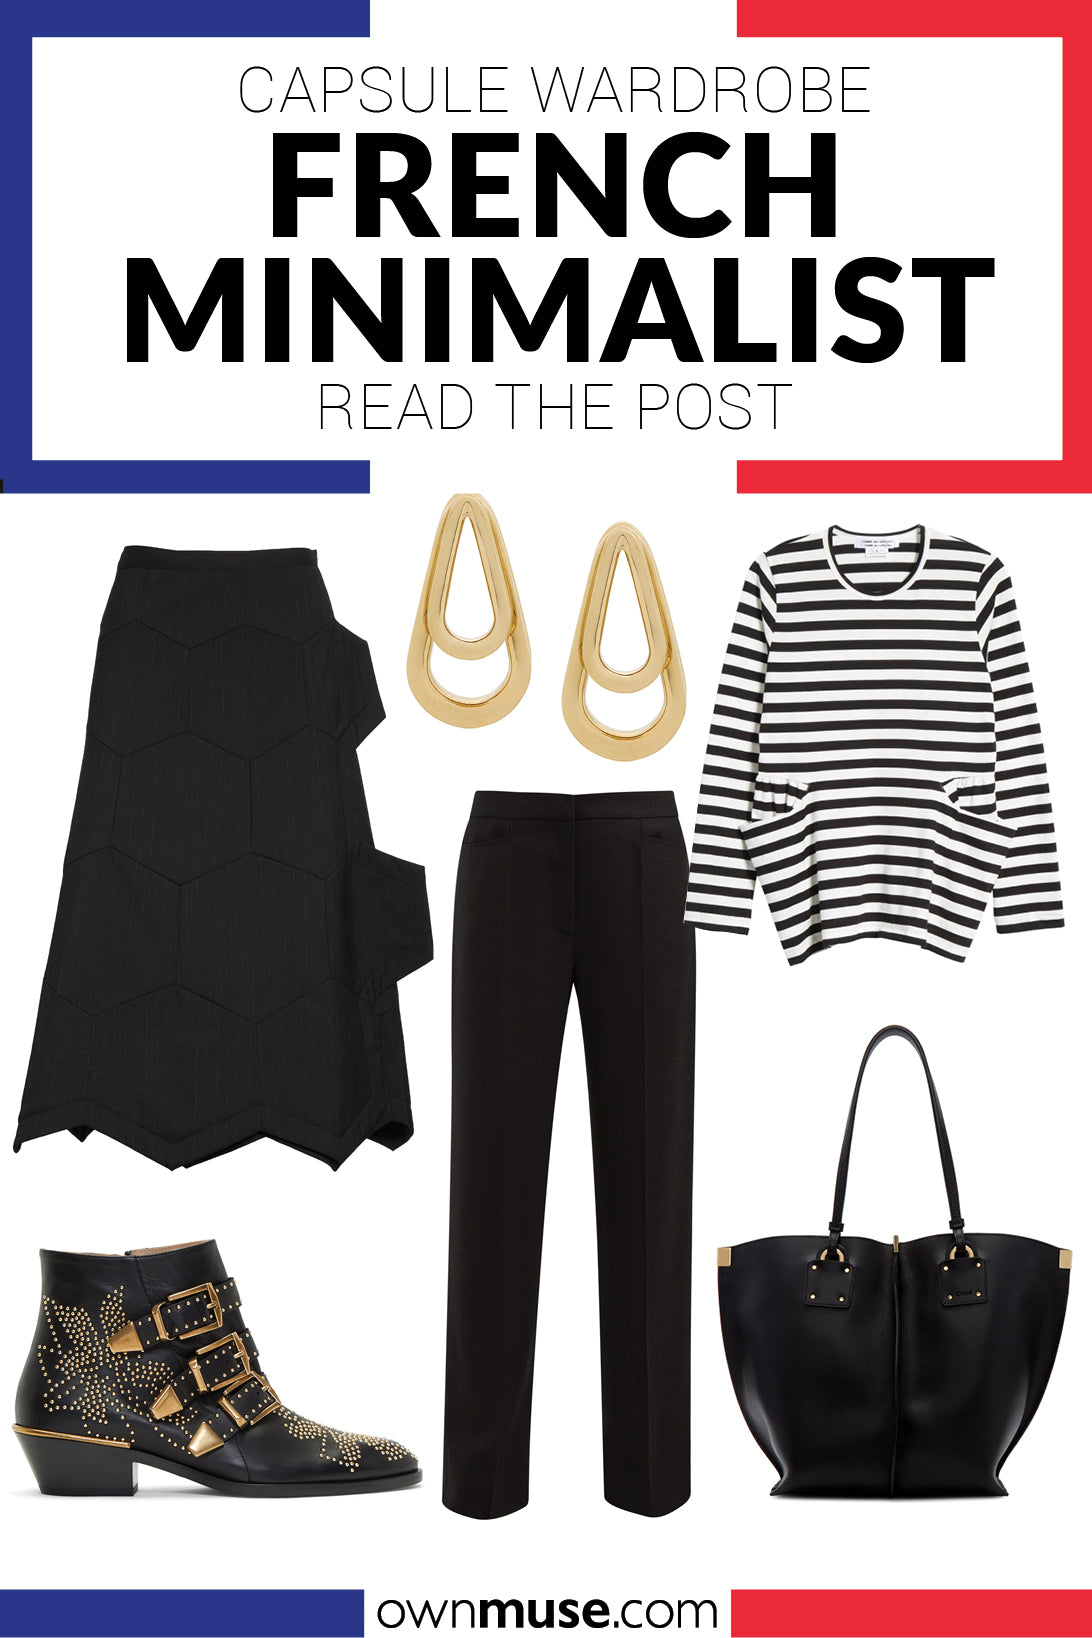 How to Build a French Minimalist Capsule Wardrobe